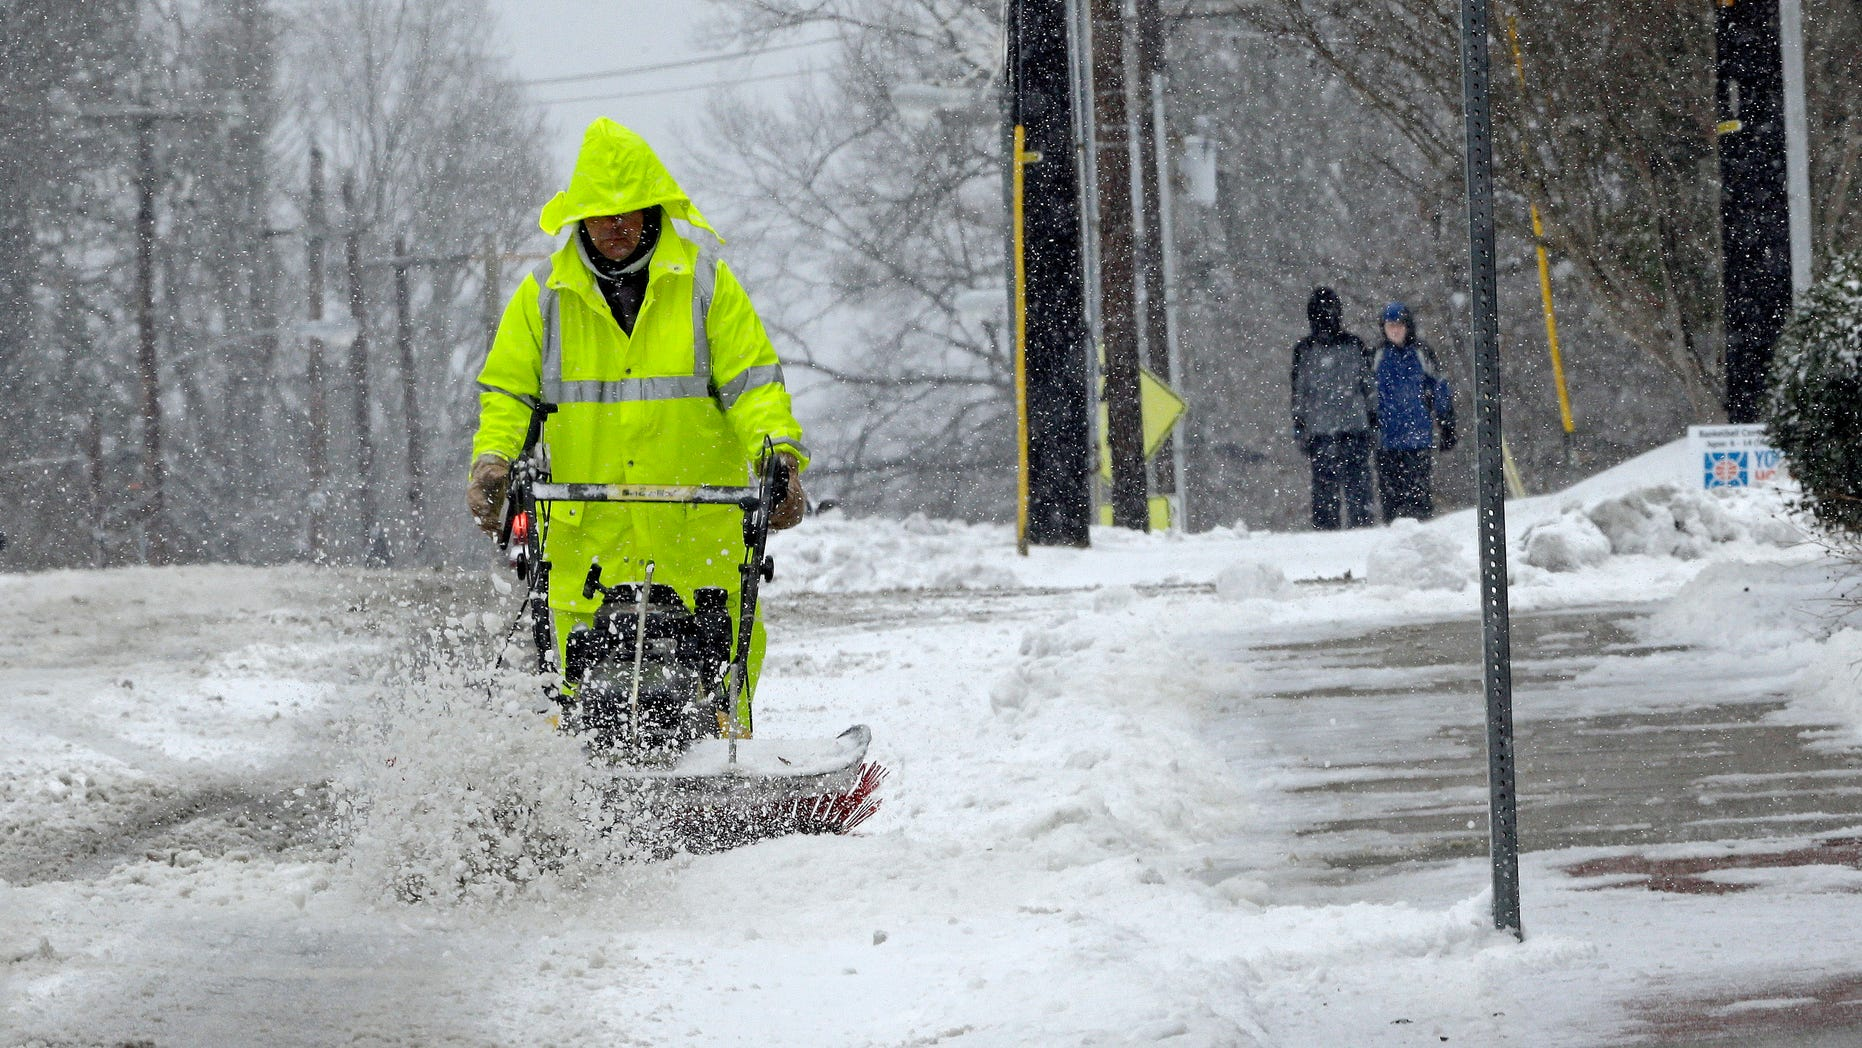 A city worker removes snow from a crosswalk as a winter storm blankets the area in Carrboro, N.C., Saturday, Jan. 7, 2017.   Snow and sleet pounded a large swath of the East Coast on Saturday, coating roads with ice and causing hundreds of crashes  (AP Photo/Gerry Broome)